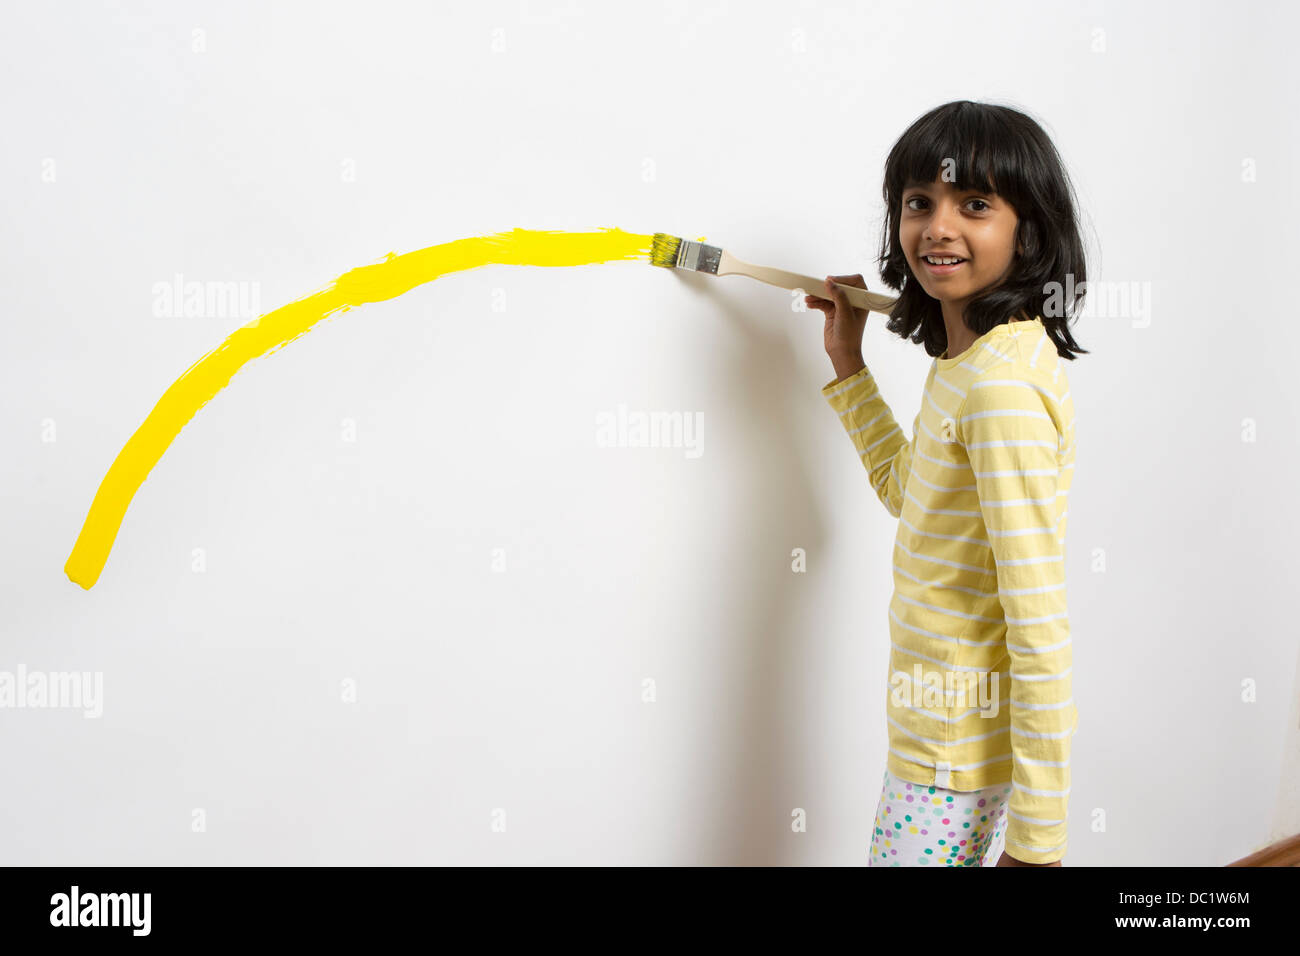 Portrait of Girl painting courbe jaune sur le mur Photo Stock